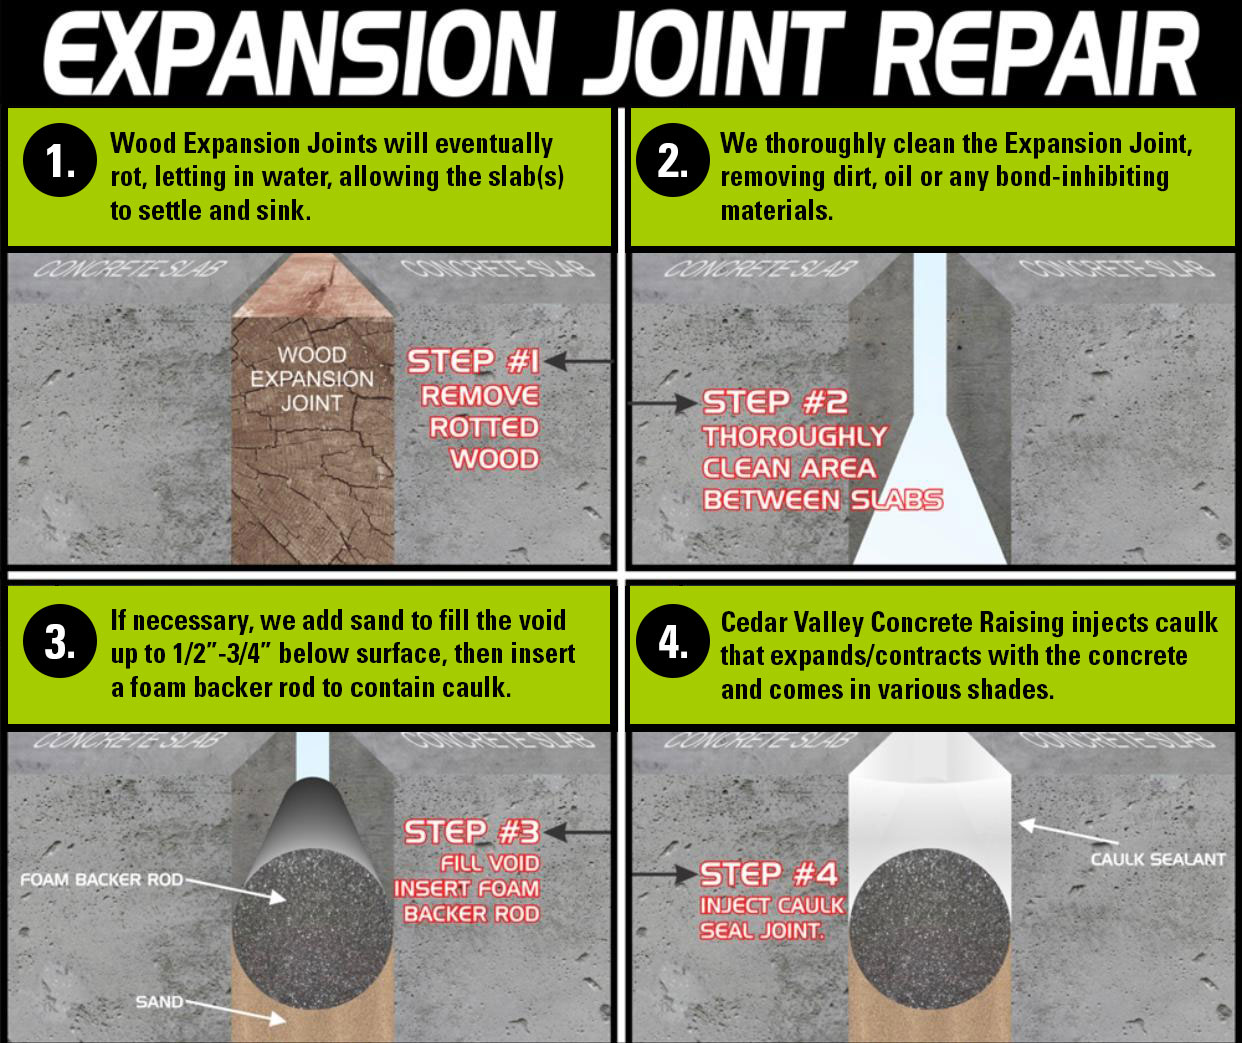 Expansion Joint Replacement - Cedar Valley Concrete Raising